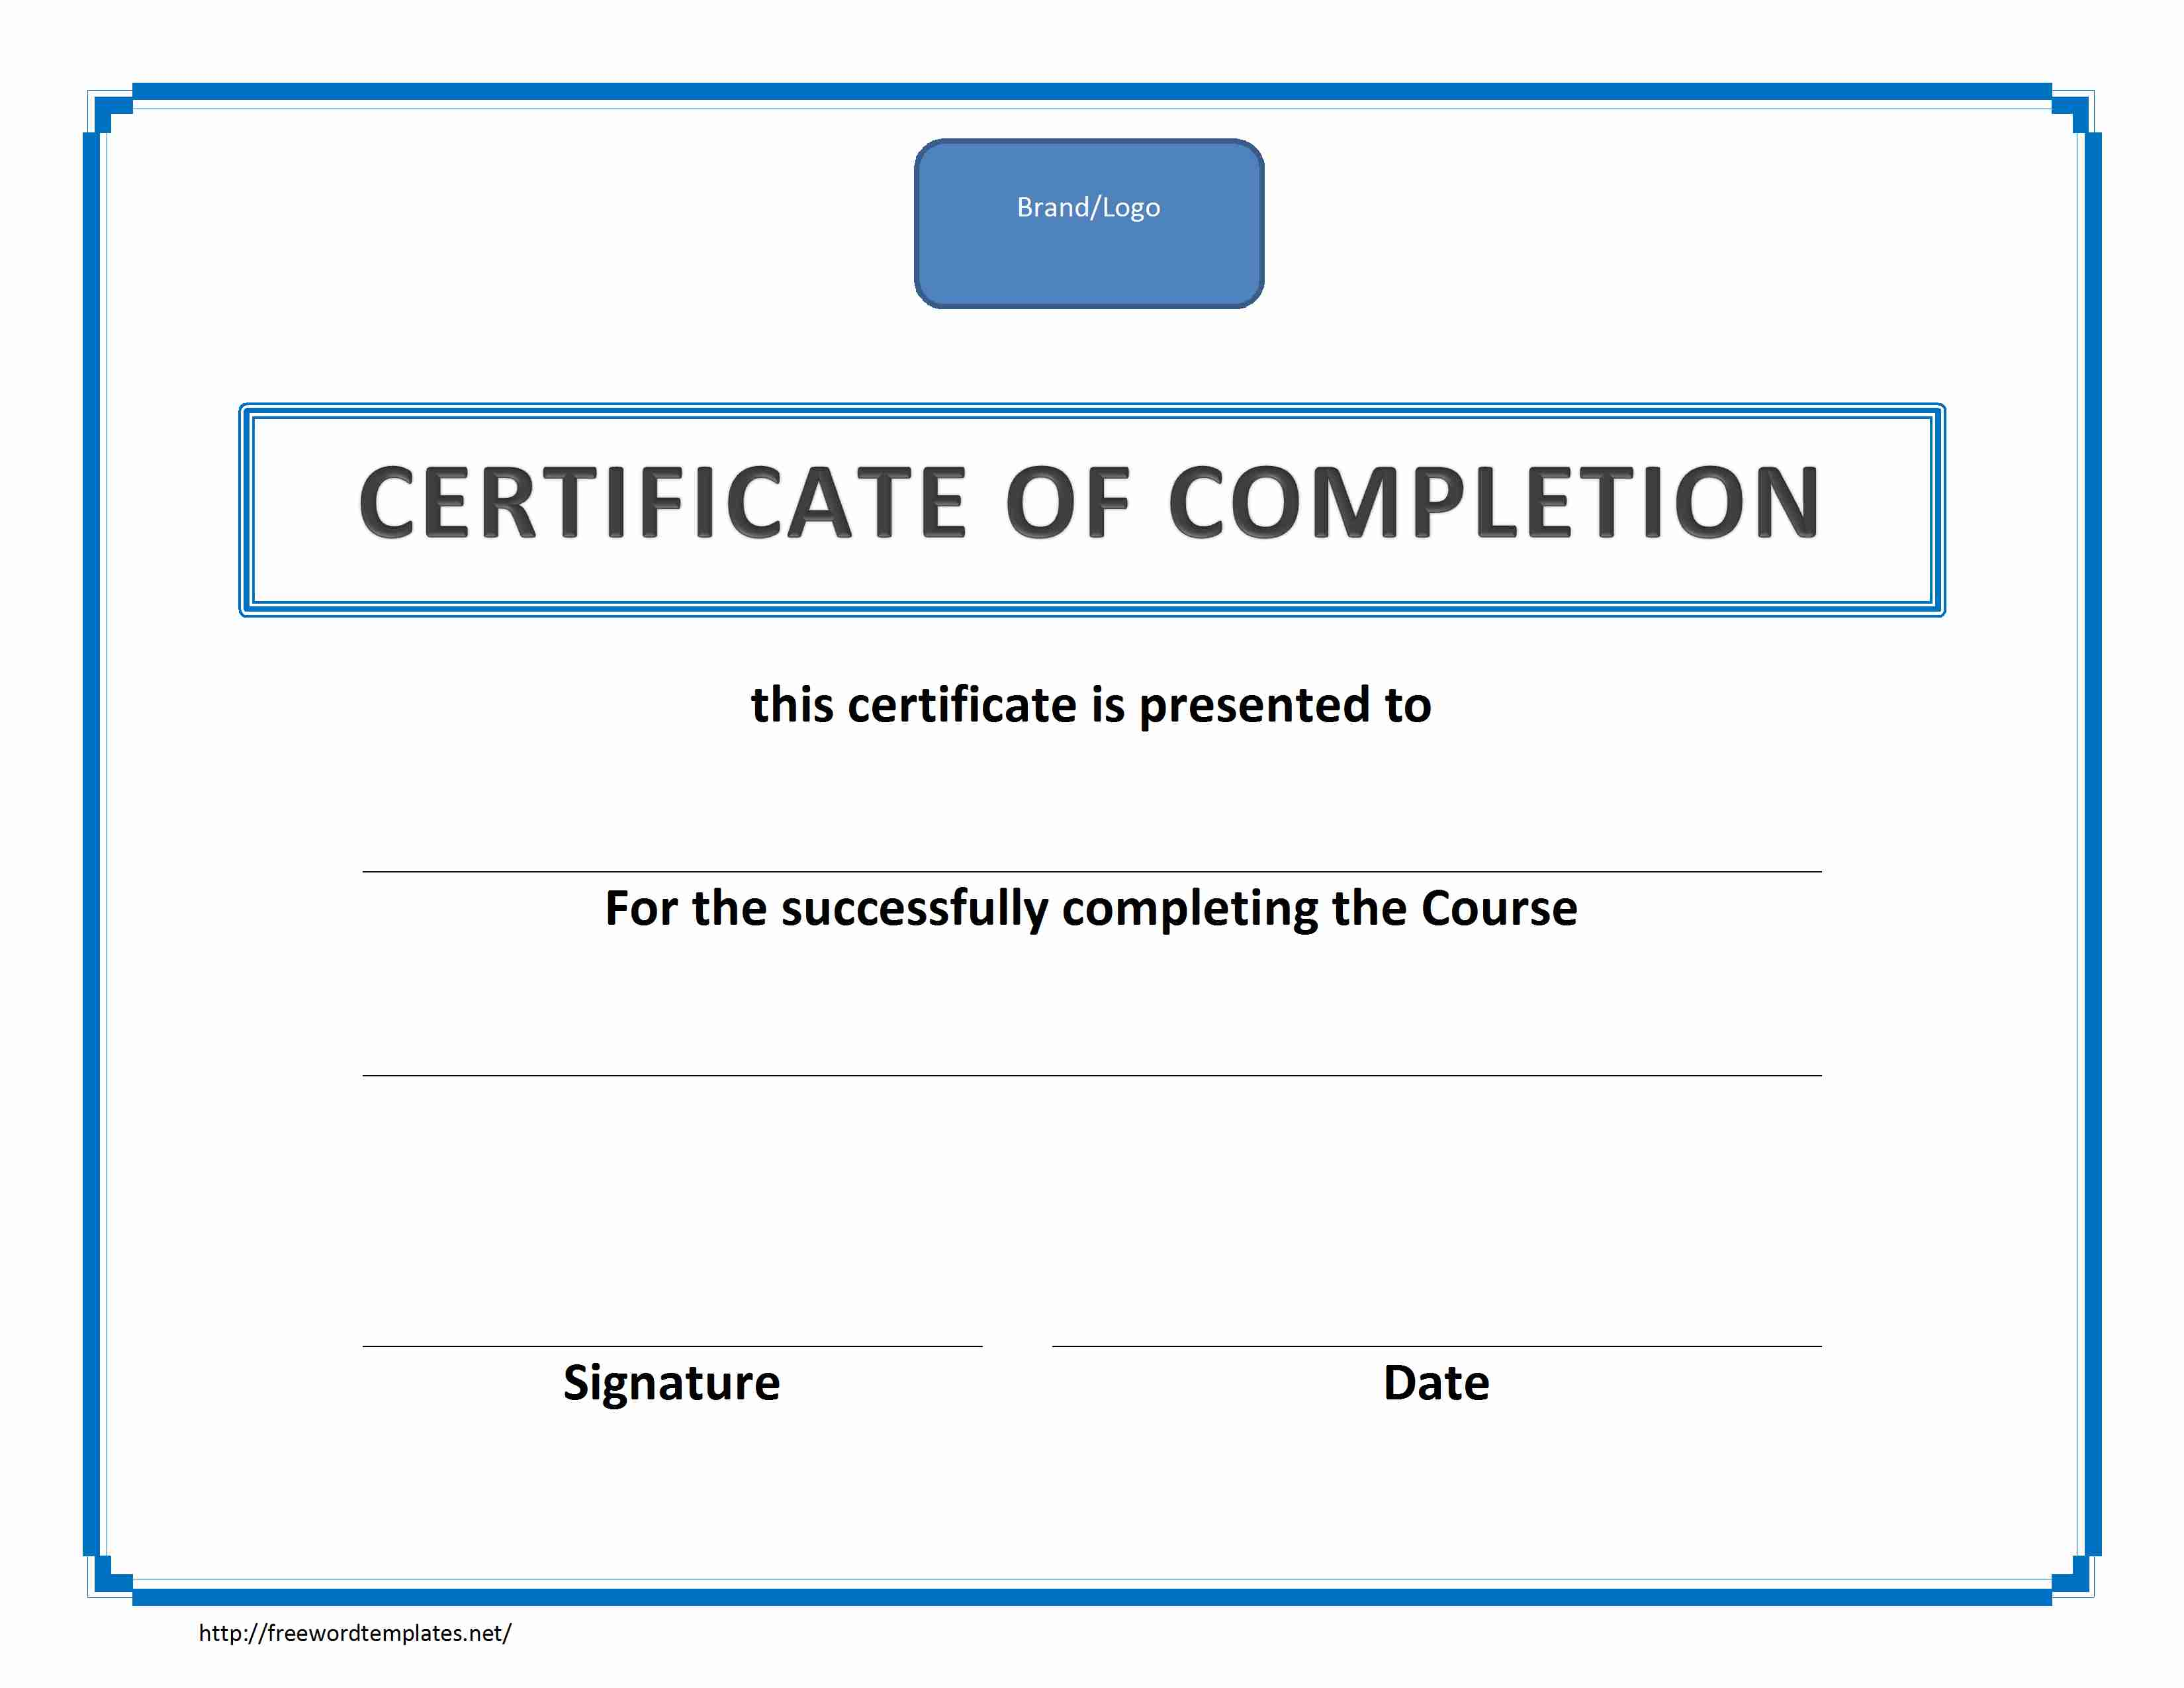 Freewordtemplates.net  Blank Certificates Of Completion